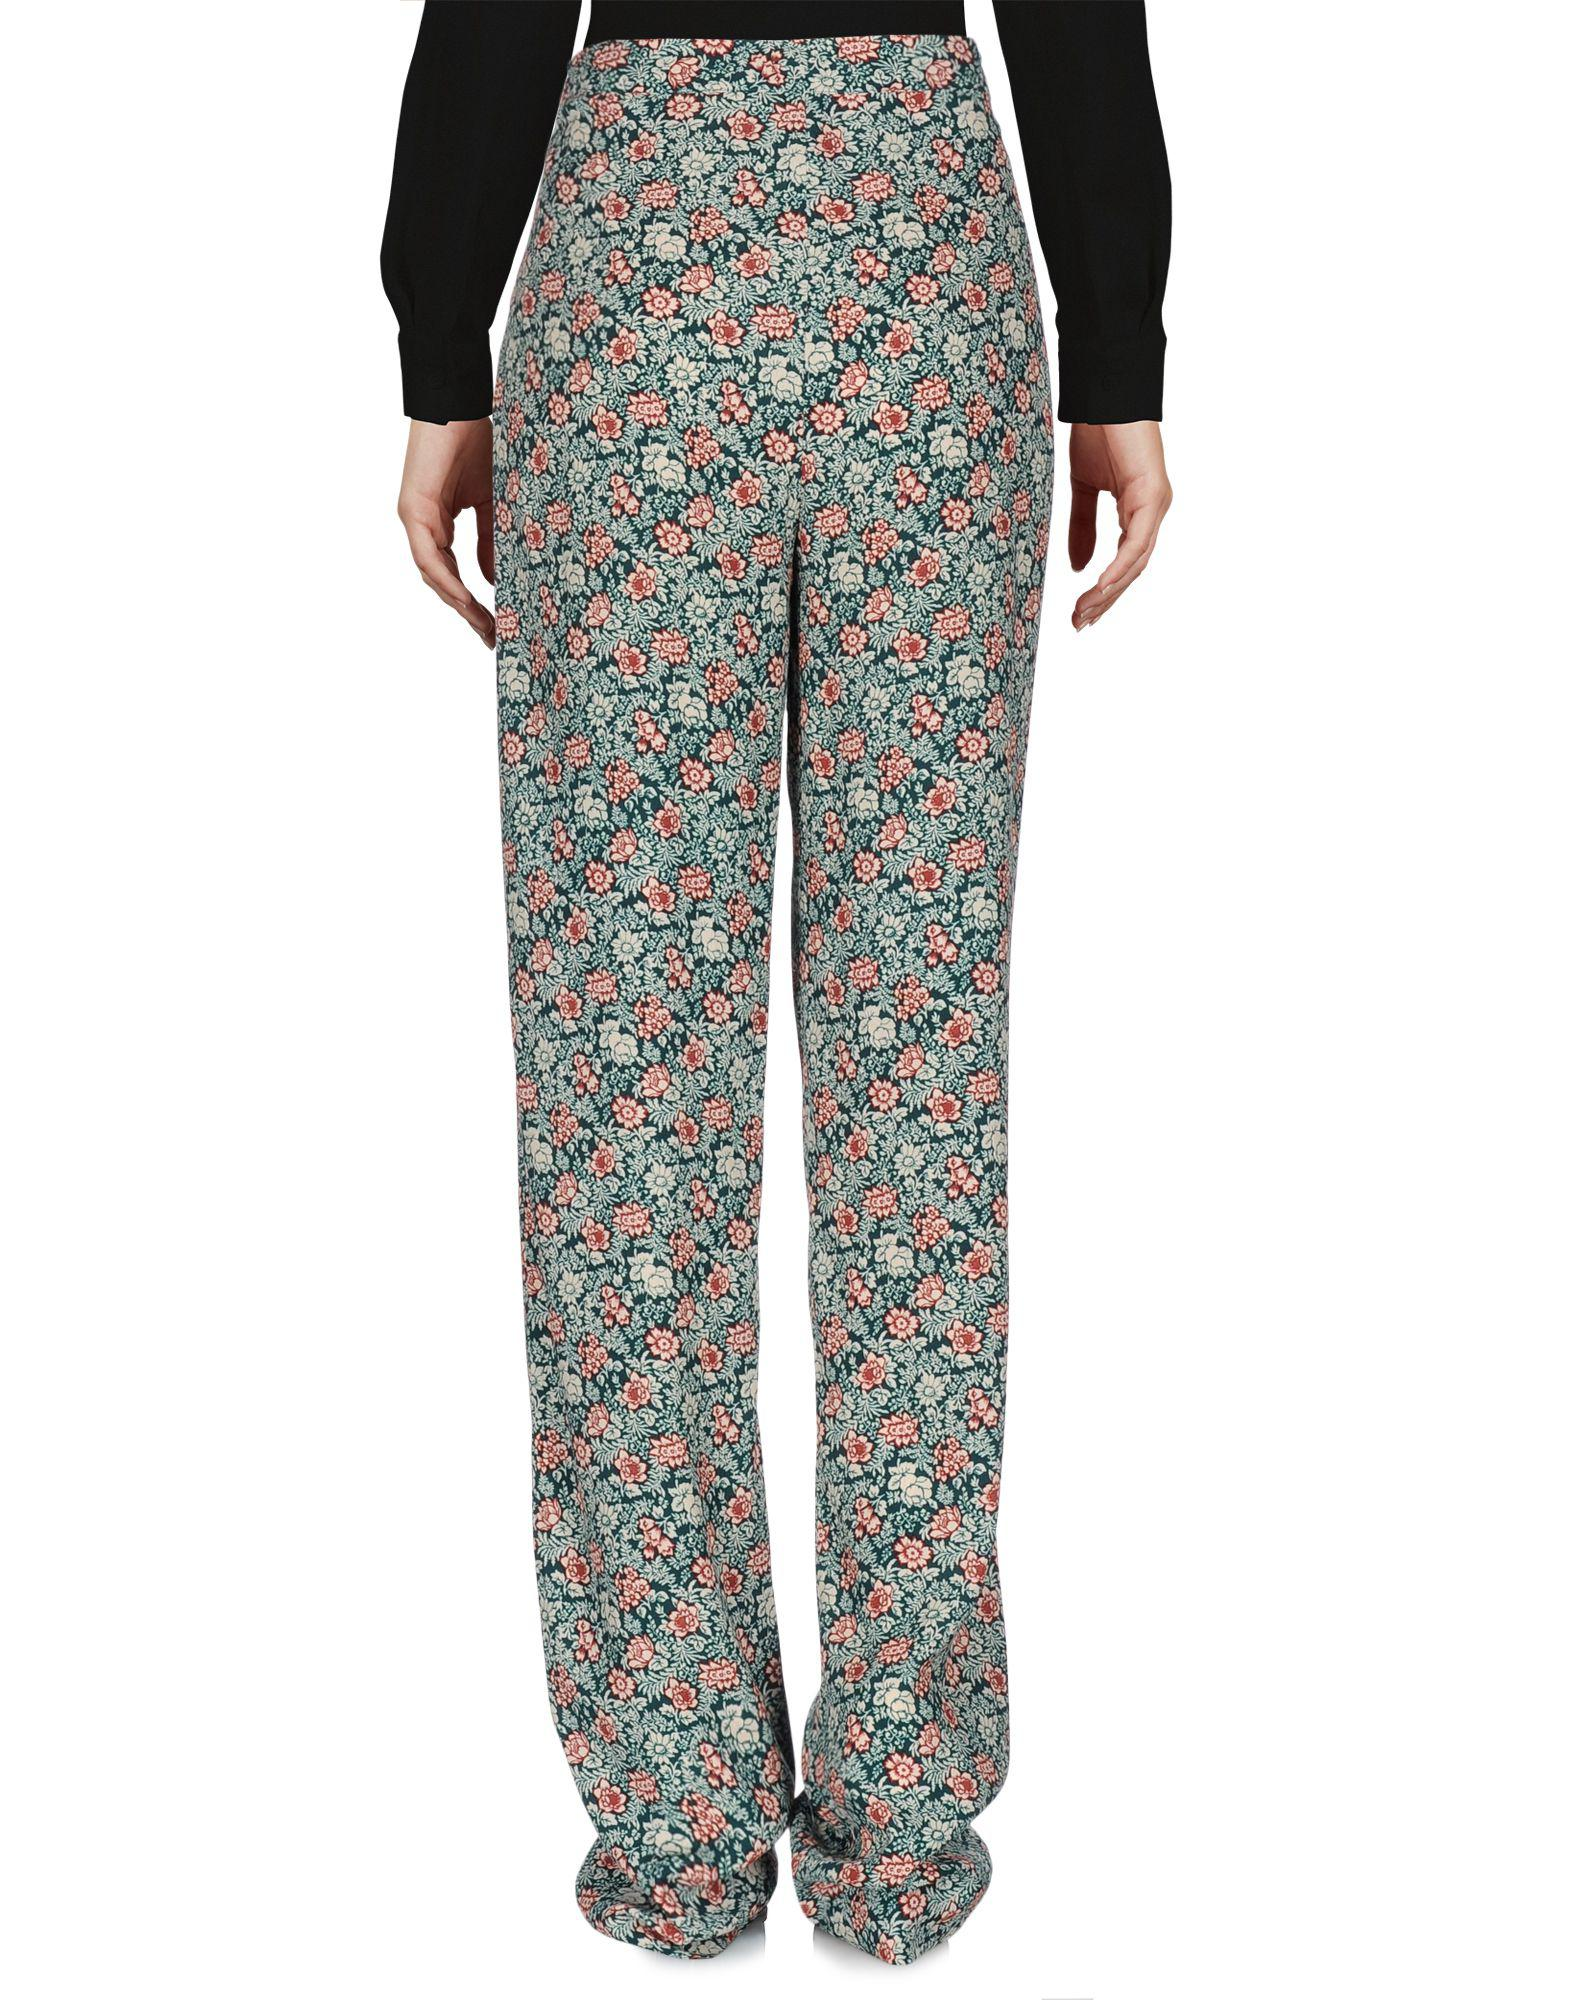 Pepe Jeans Synthetic Casual Trouser in Dark Green (Green)